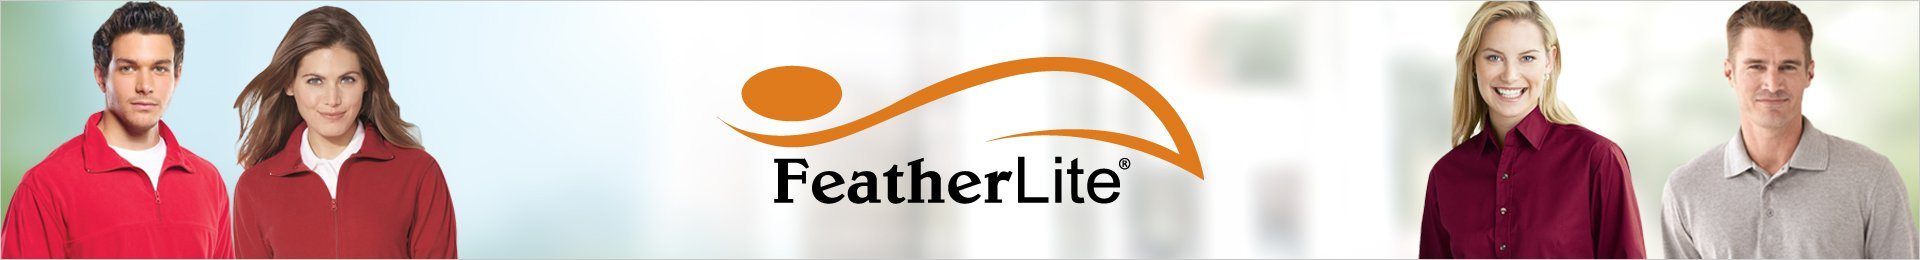 Featherlite Jacket, Vest and Pullovers